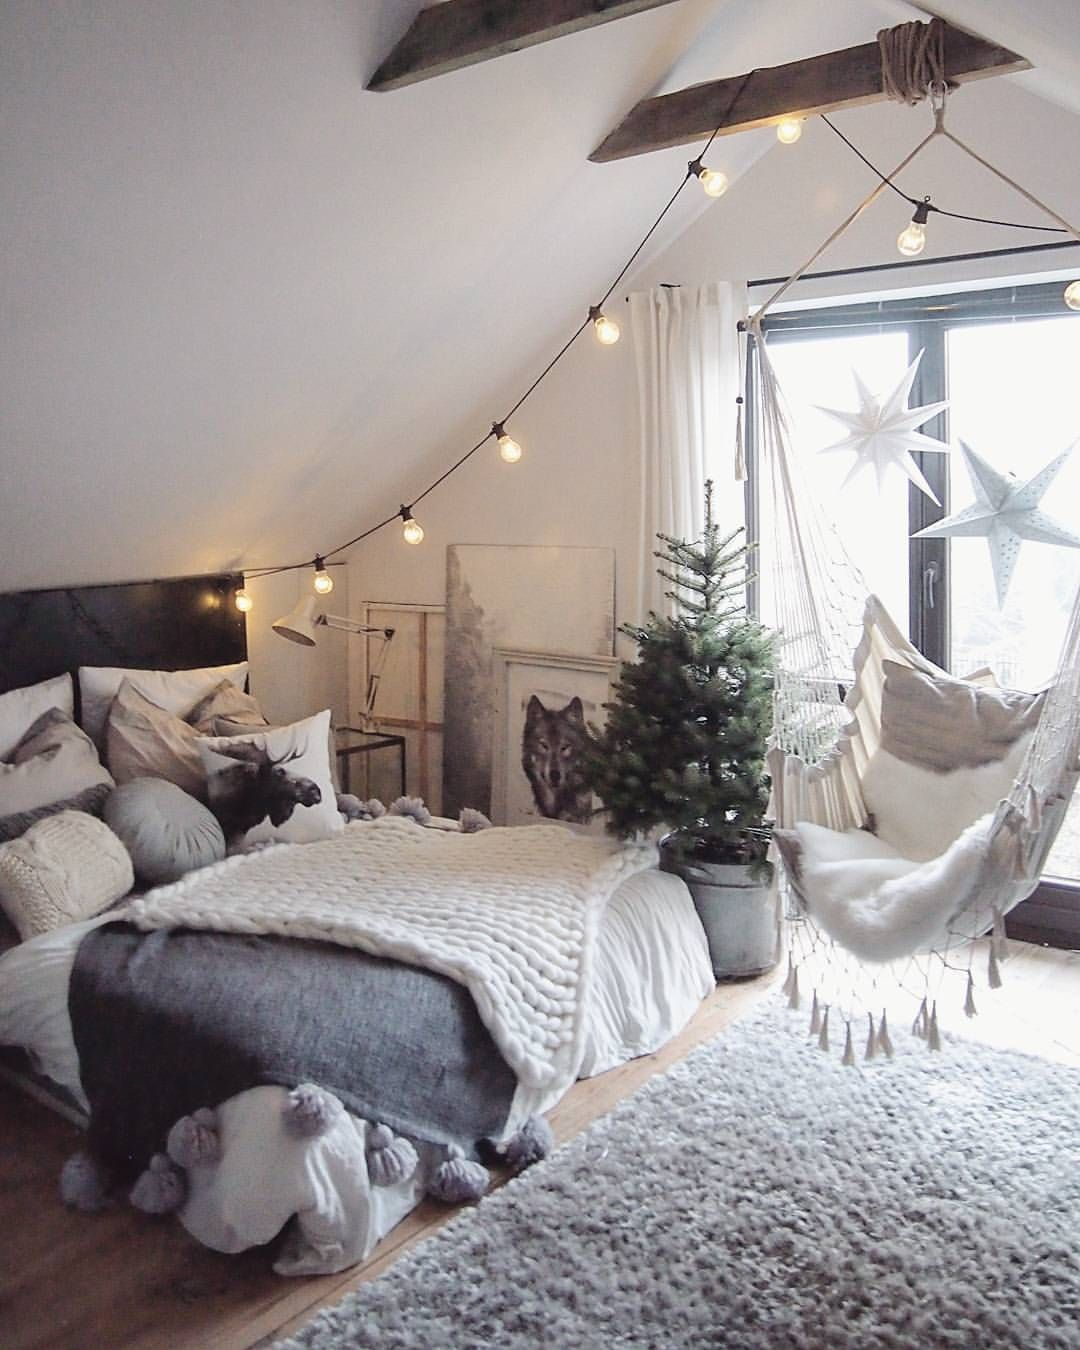 Cosy bedroom fairy lights - Uraesthetichoe How To Bohemian Bedroom Apartmentshowcase Boho Cozy Bedroom And Barware